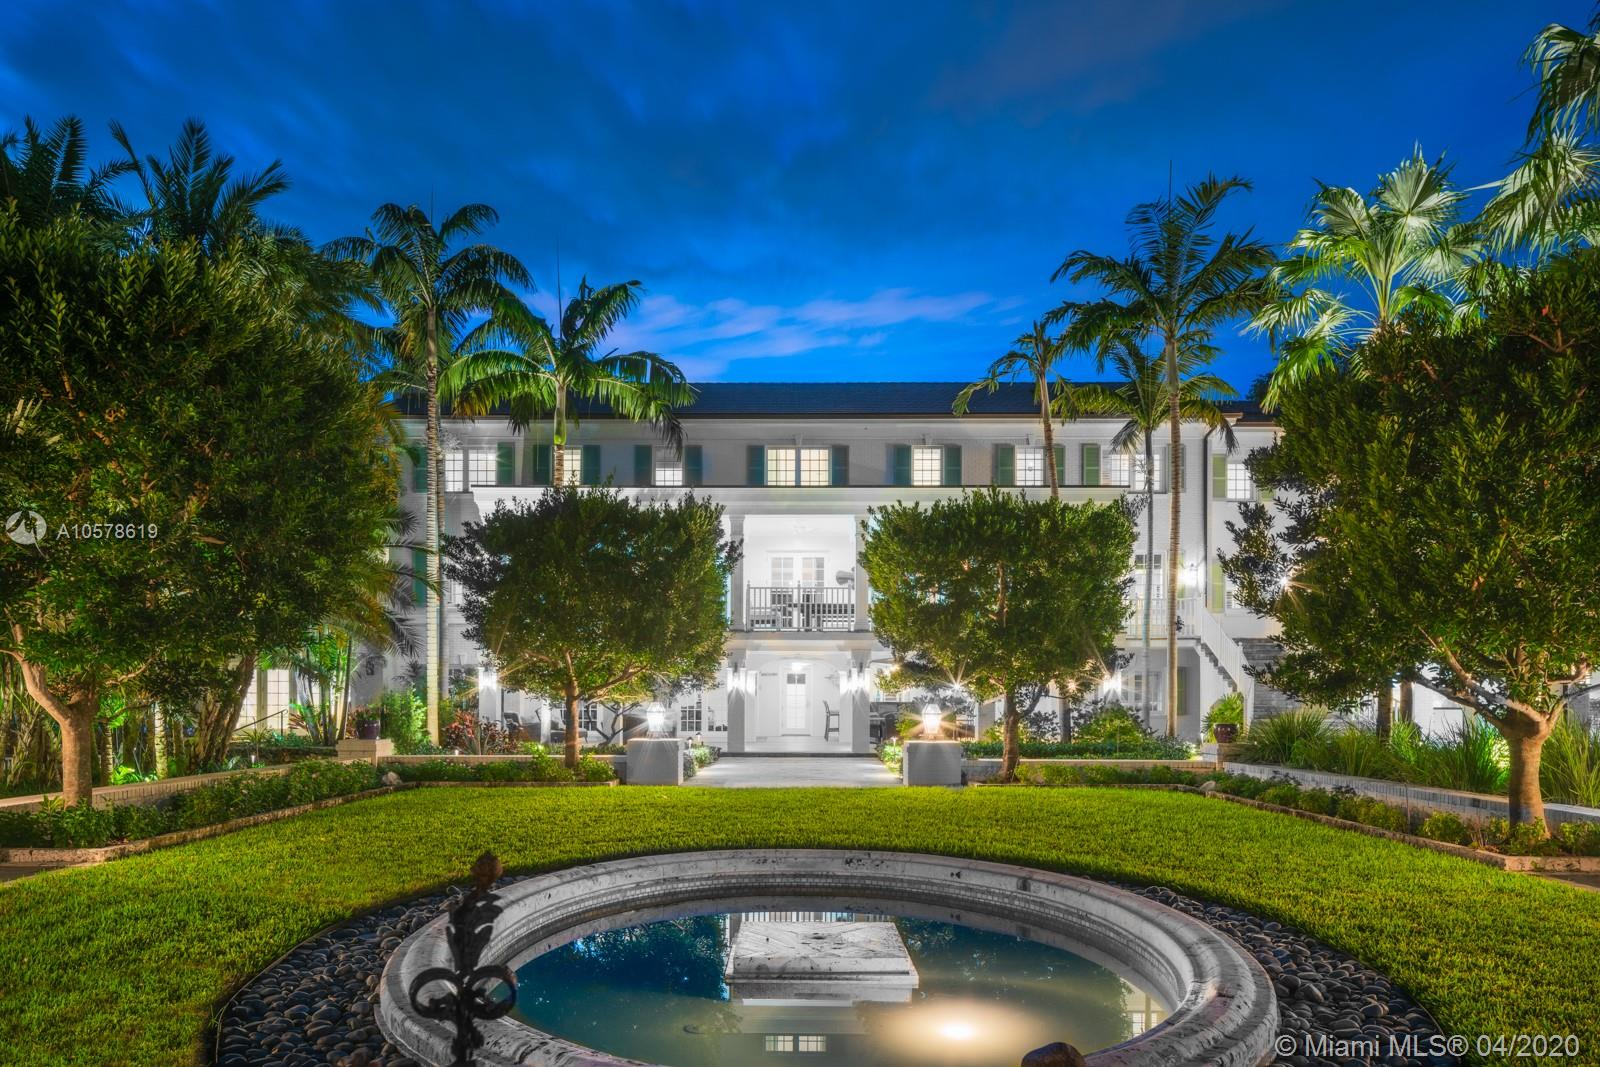 8585 Old Cutler Rd, Coral Gables FL, 33143